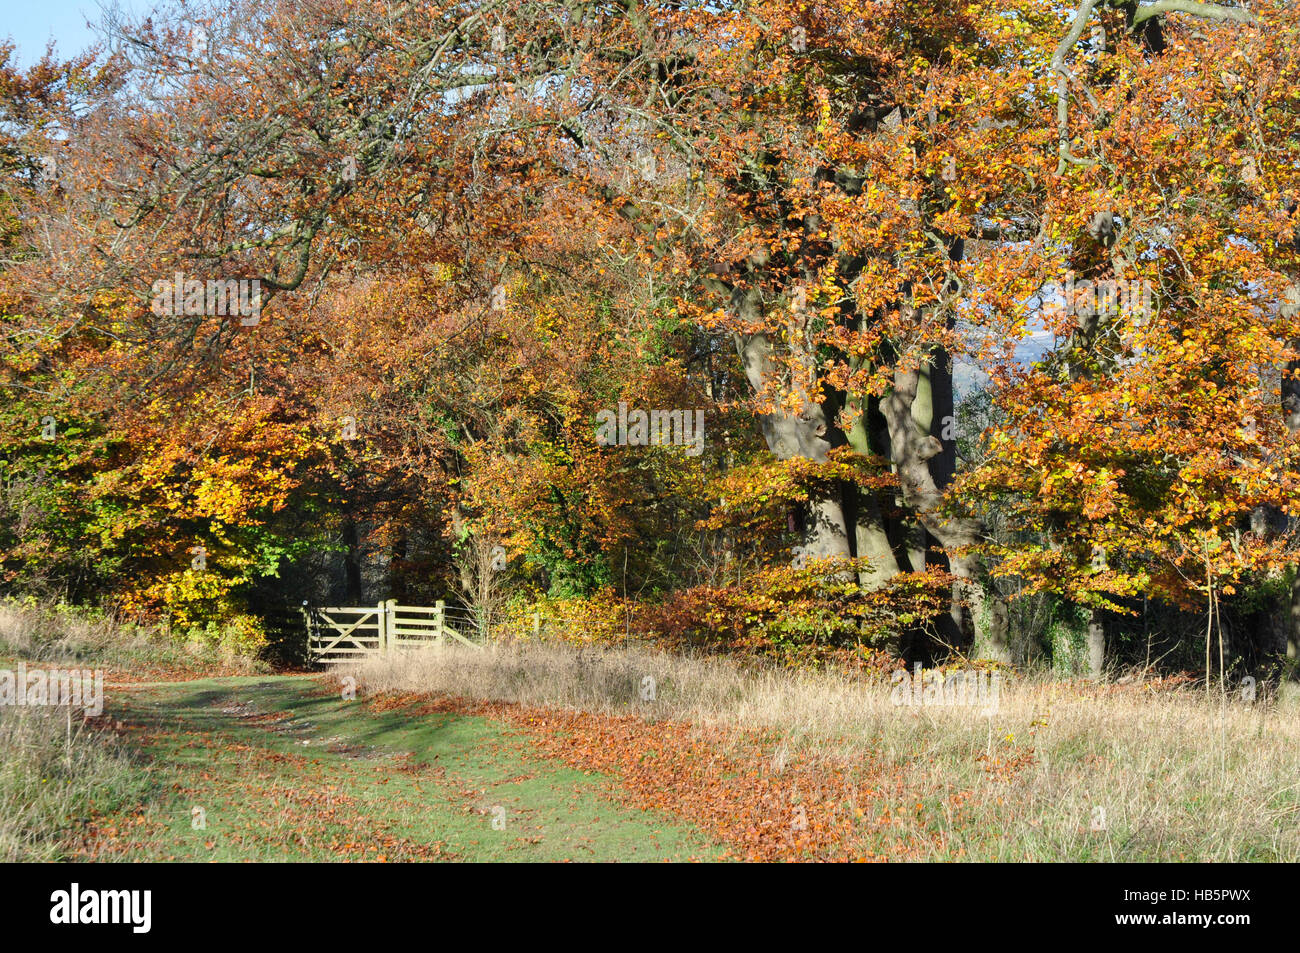 Autumn scene in the Chiltern Hills - footpath - woodland gate - trees - russet leaves sunlight and shadows - blue - Stock Image